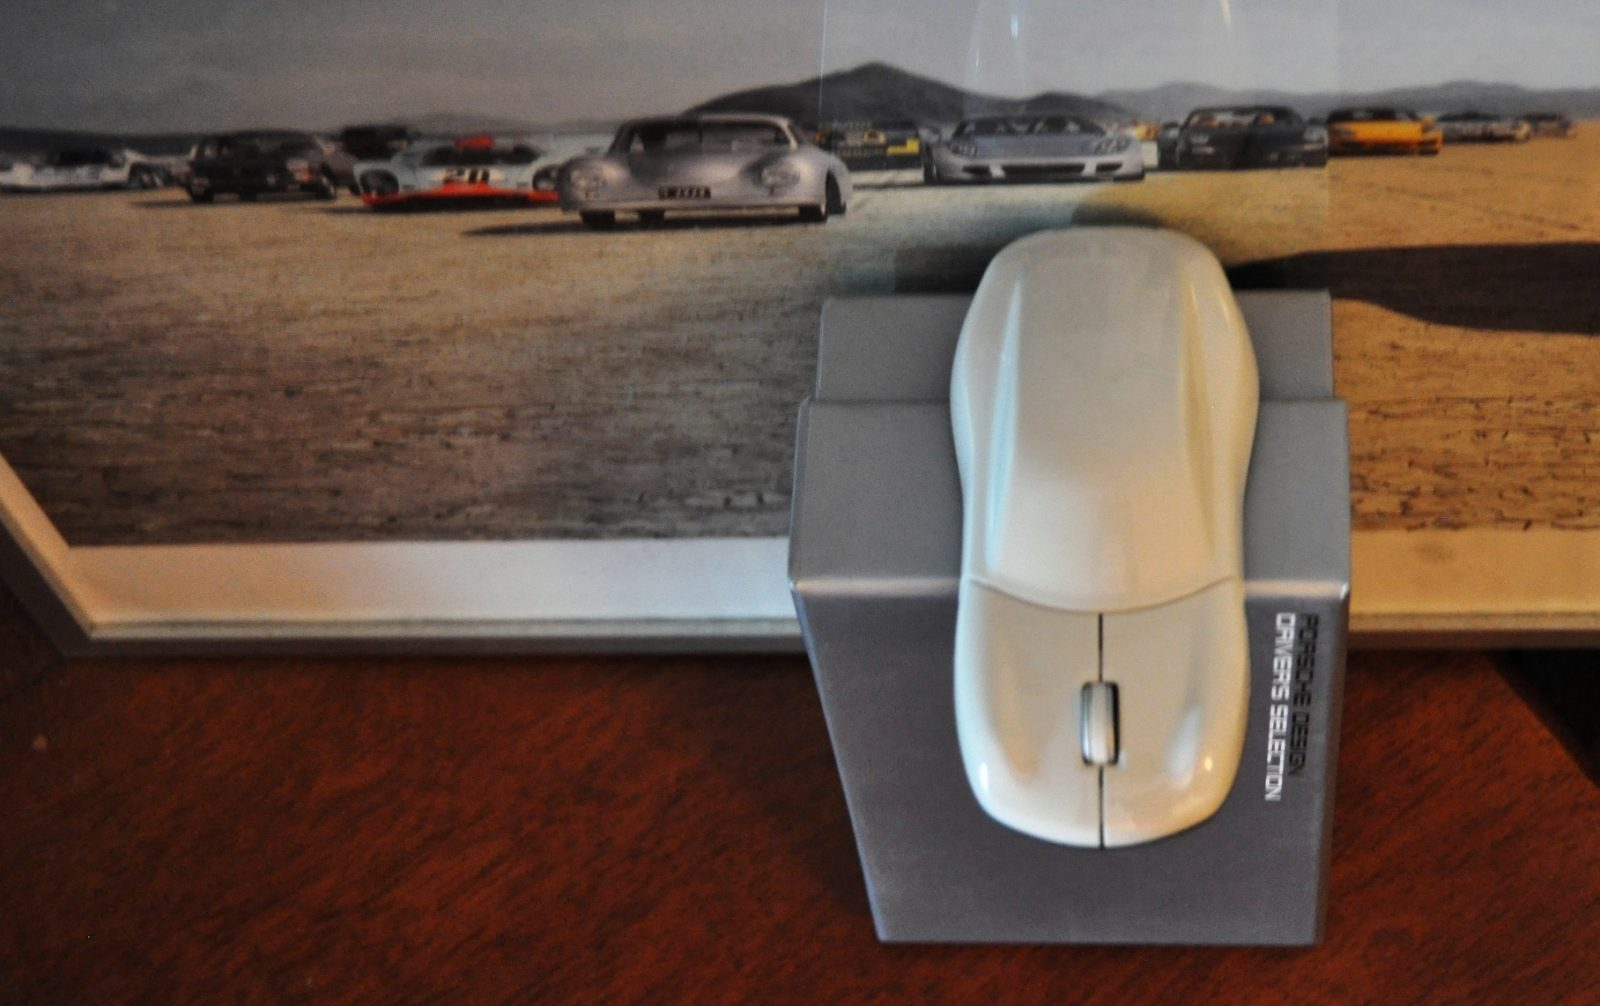 CarRevsDaily - Porsche Design Computer Mouse - Gadget Review 17